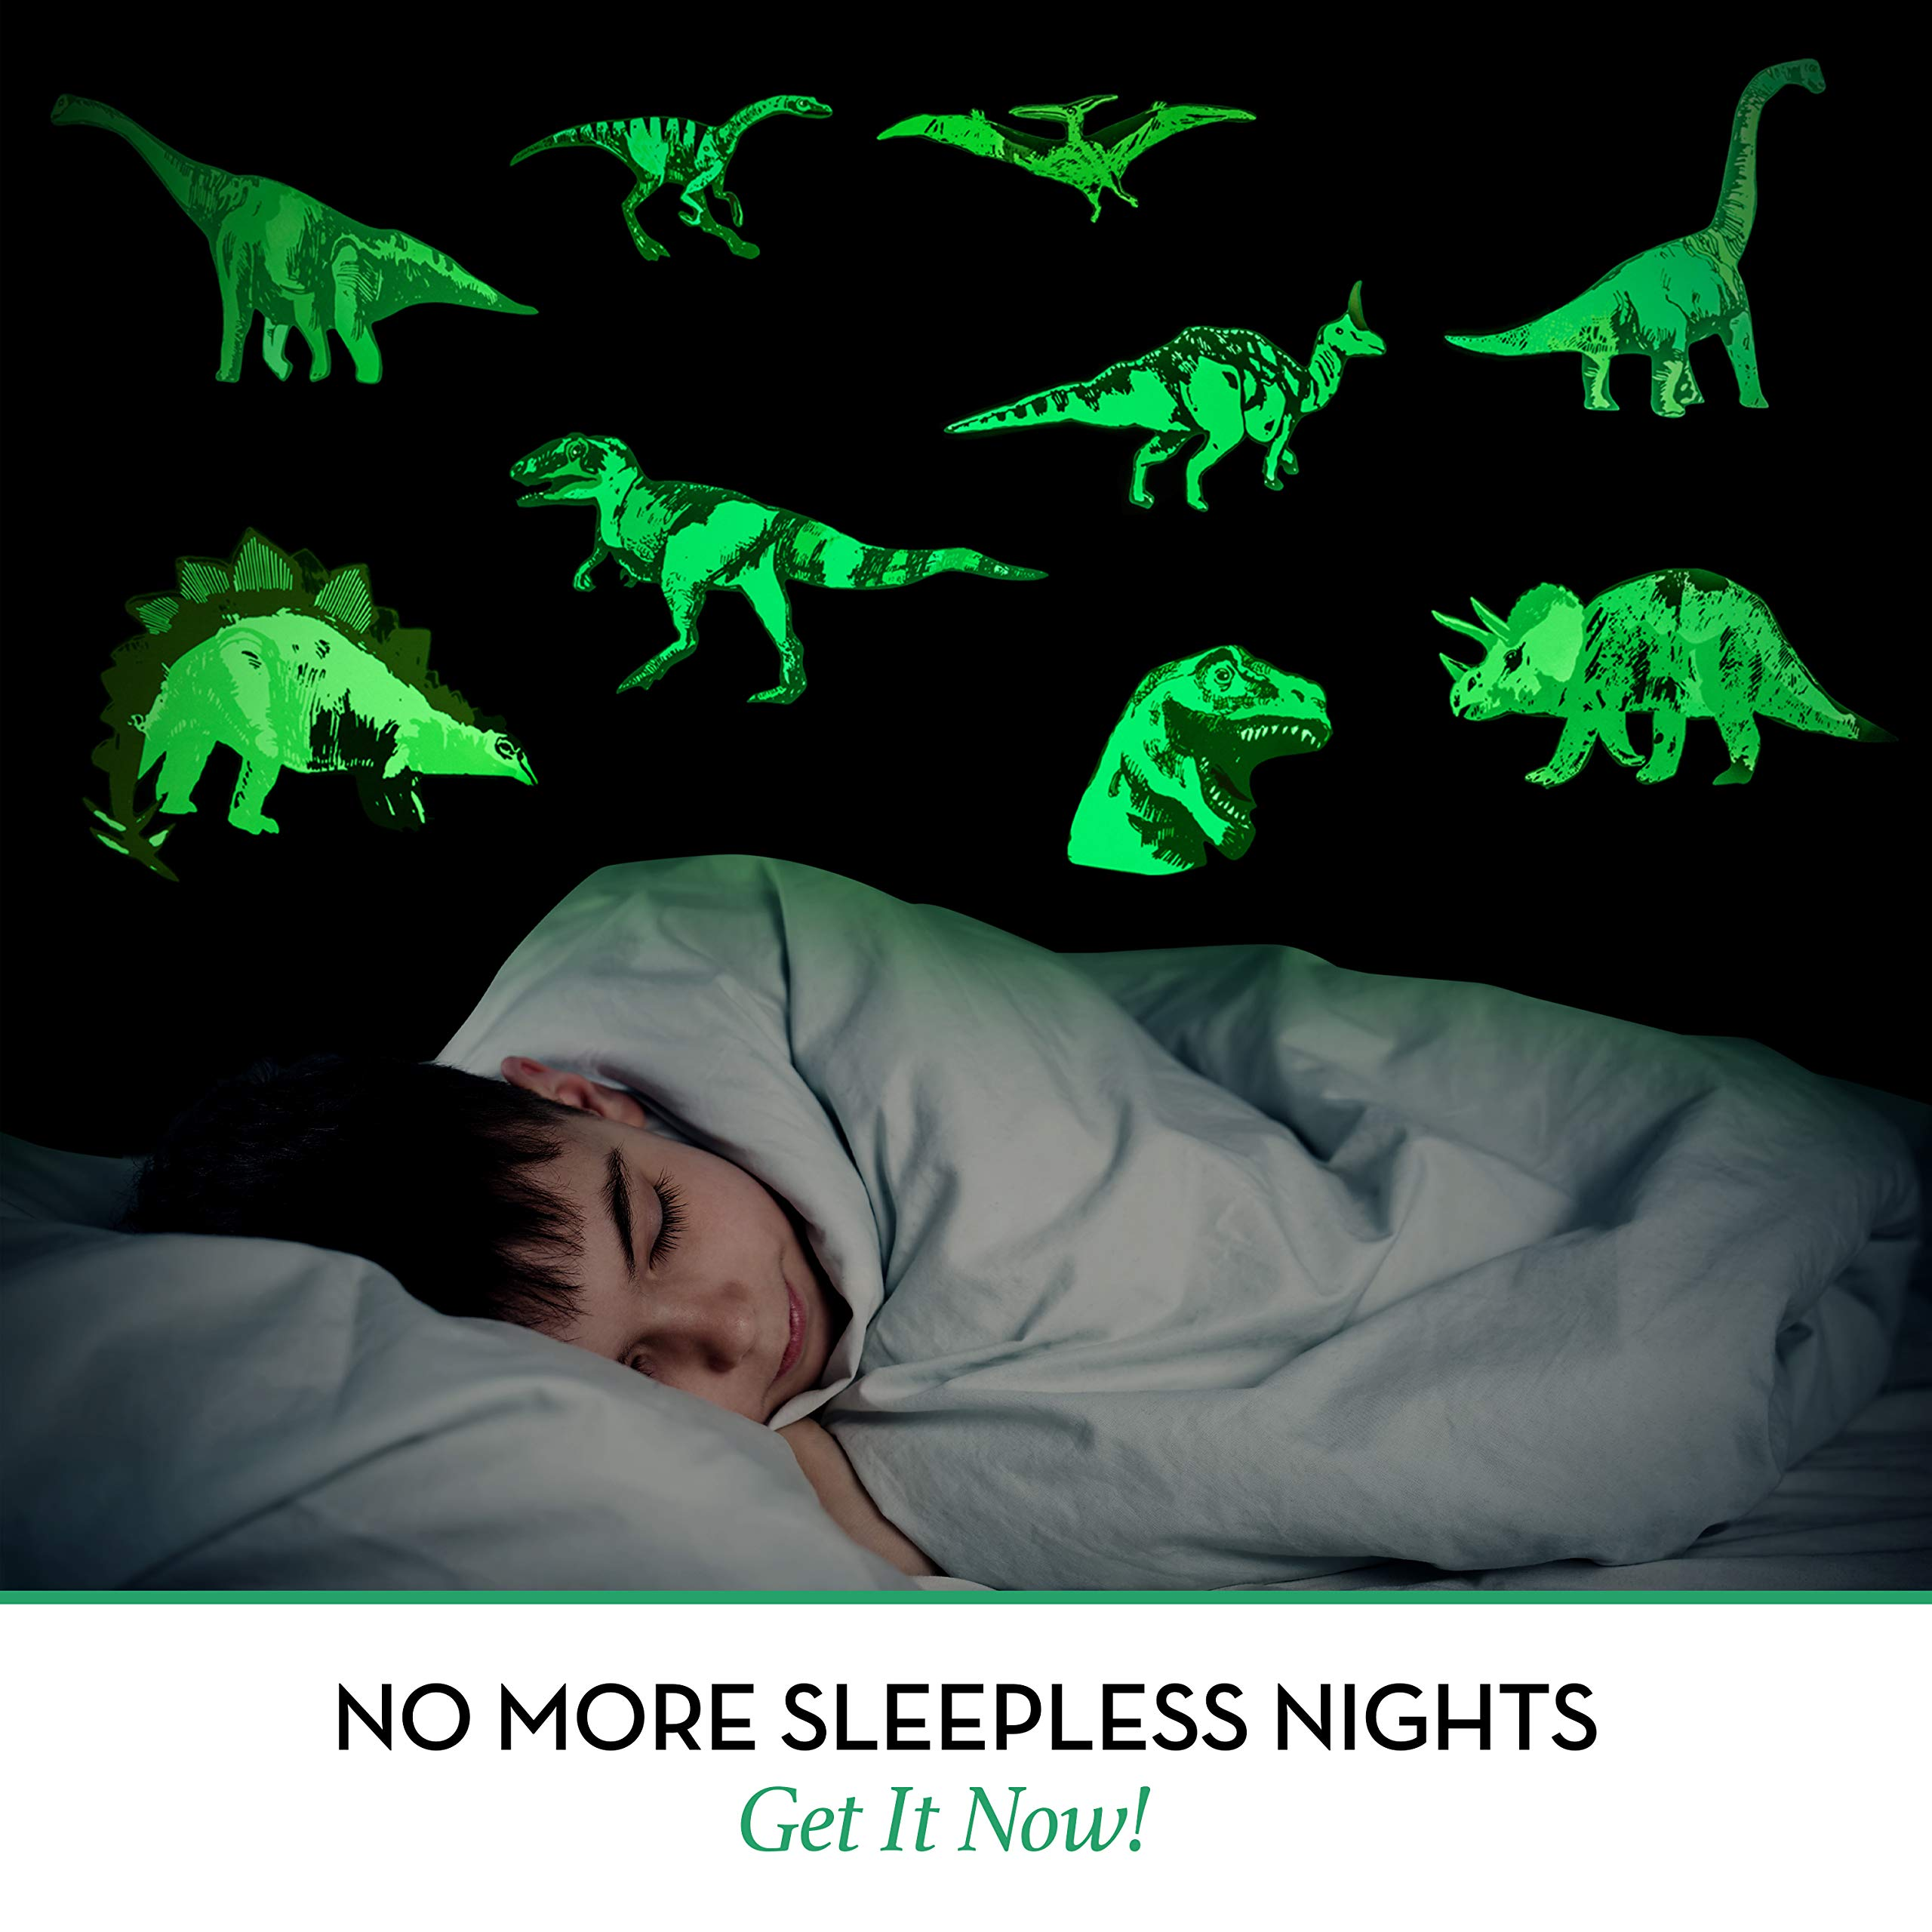 Glow in The Dark Dinosaur Wall Stickers Decorative Decals for Kids Teens Adults Bedroom, Living Room, Classroom - Creative Gift for Boys and Girls.